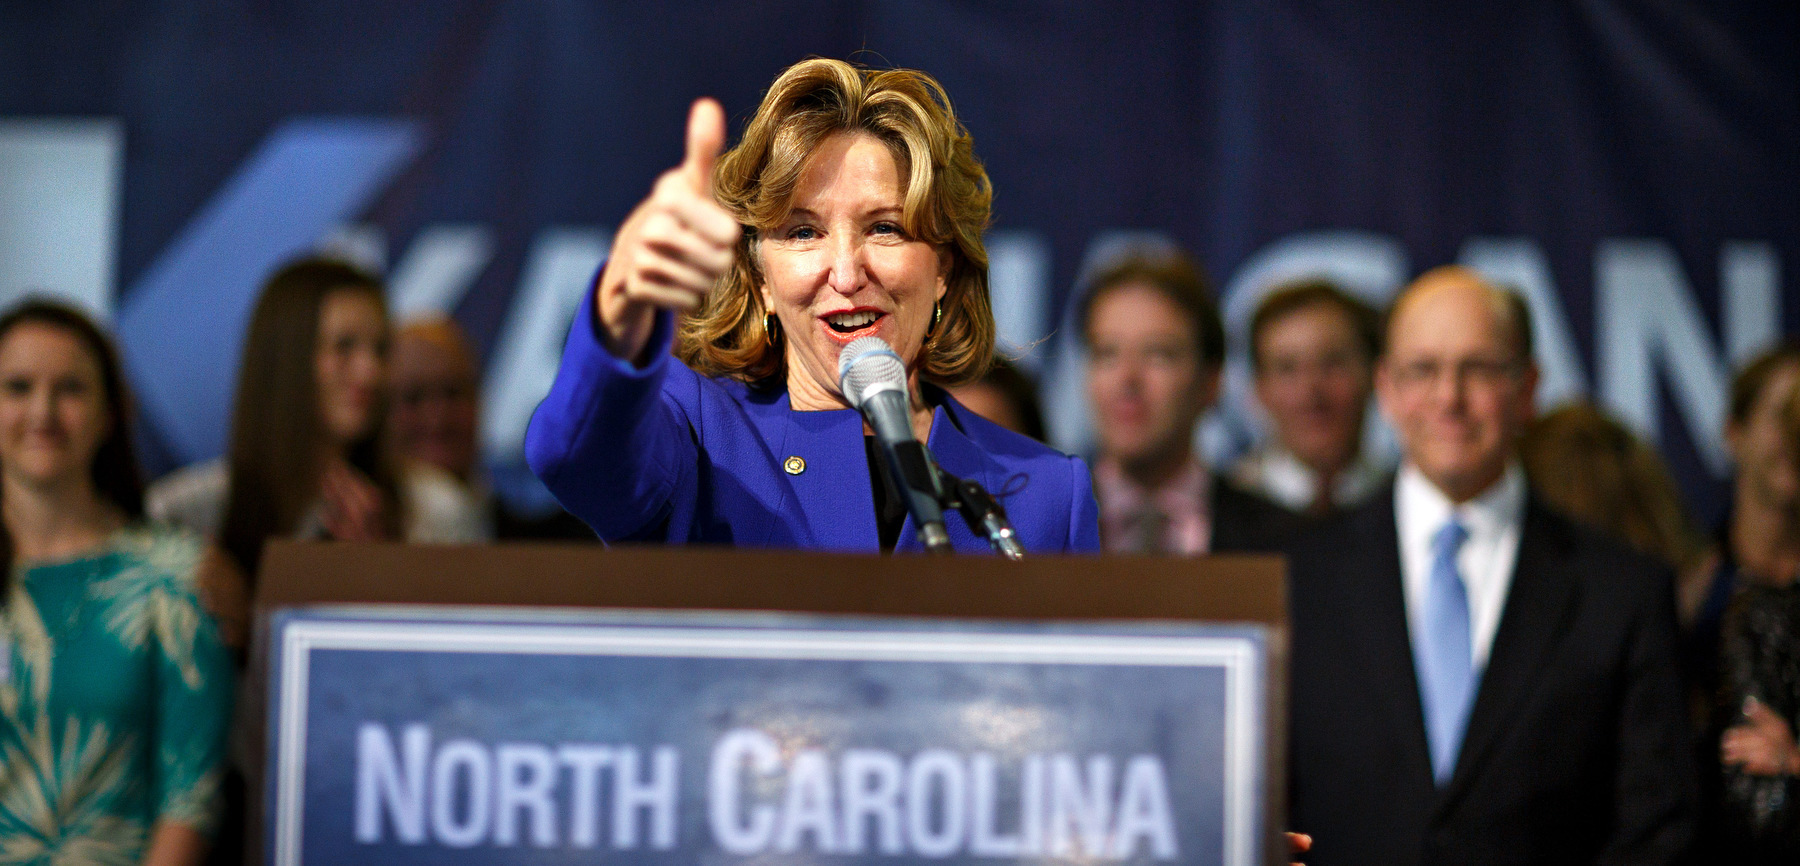 Third Place | Multiple PhotosJerry Wolford, News & RecordSenator Kay Hagan concedes the race to Thom TIllis and applauds her campaign staff in attendance in the plaza of the Greensboro Coliseum on Tuesday, November 4, 2014, in Greensboro, N.C.